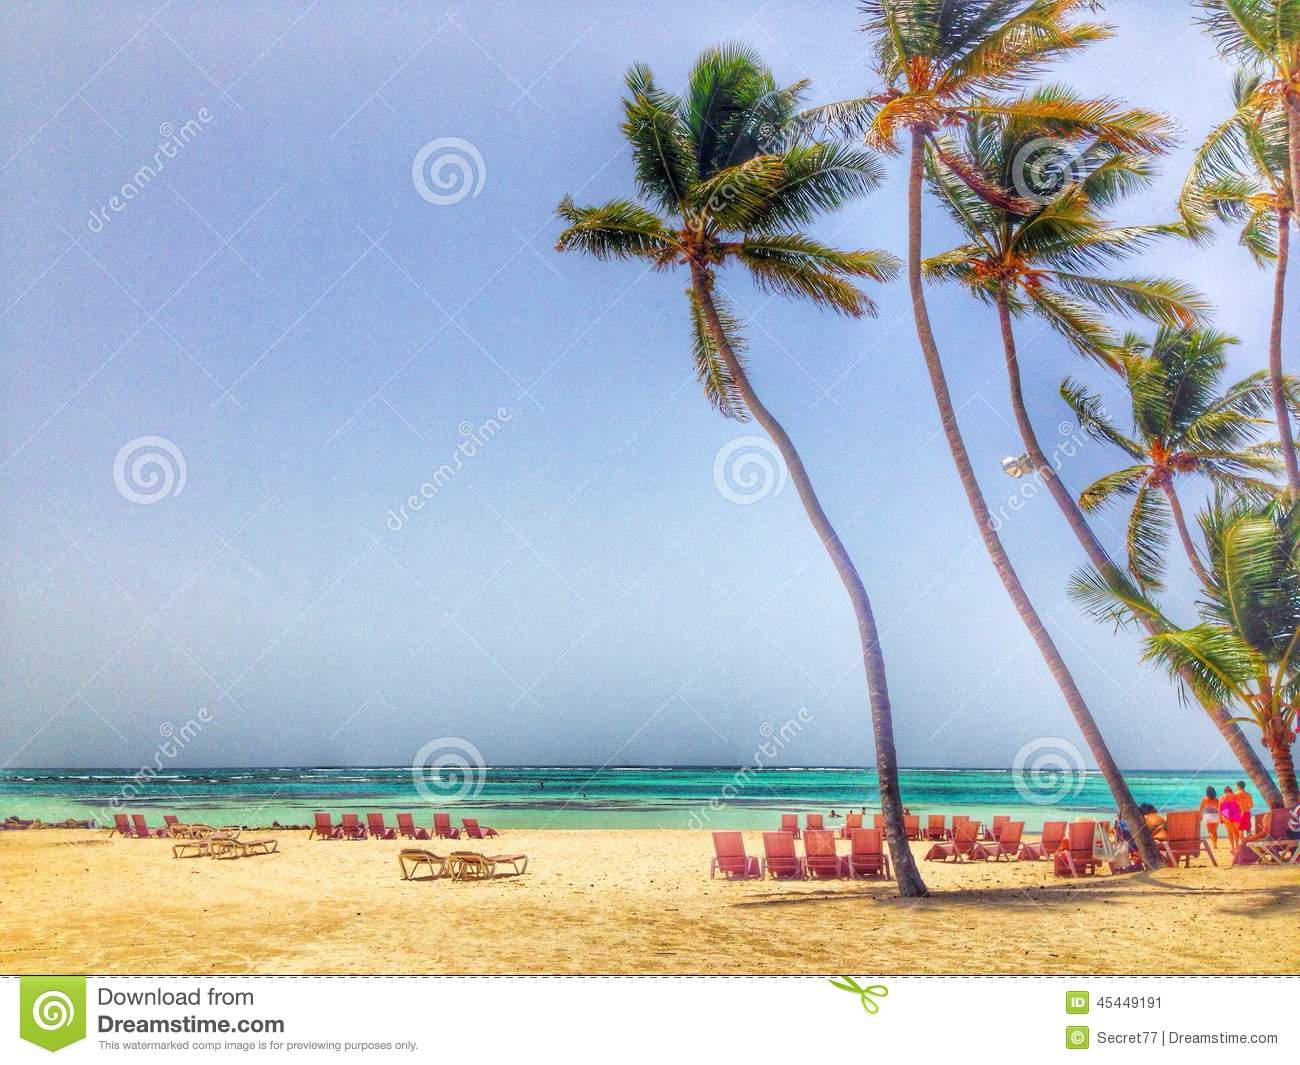 punta cana stock image image of cana republic dominican. Black Bedroom Furniture Sets. Home Design Ideas